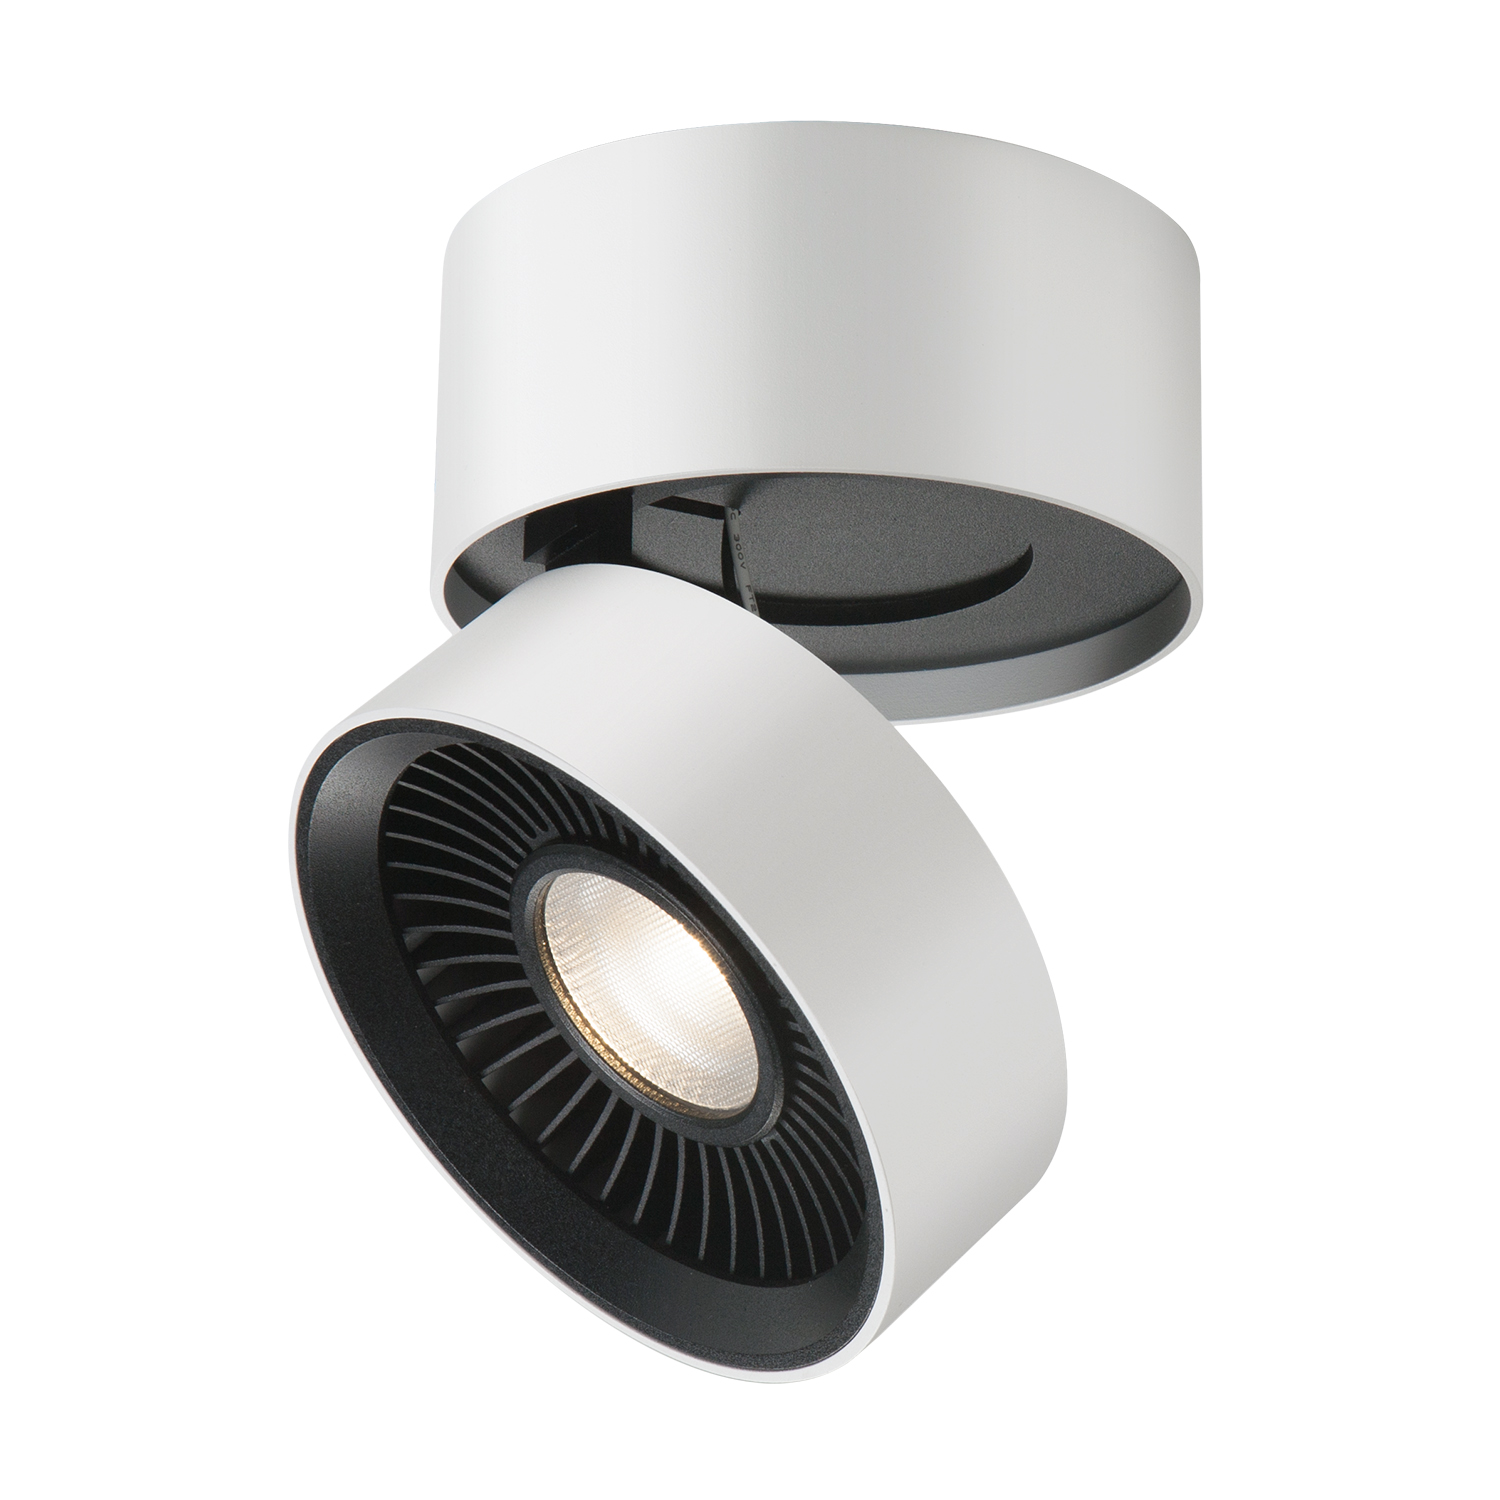 Solo Ceiling Light Fixture By Kuzco Lighting Fm9405 Wh